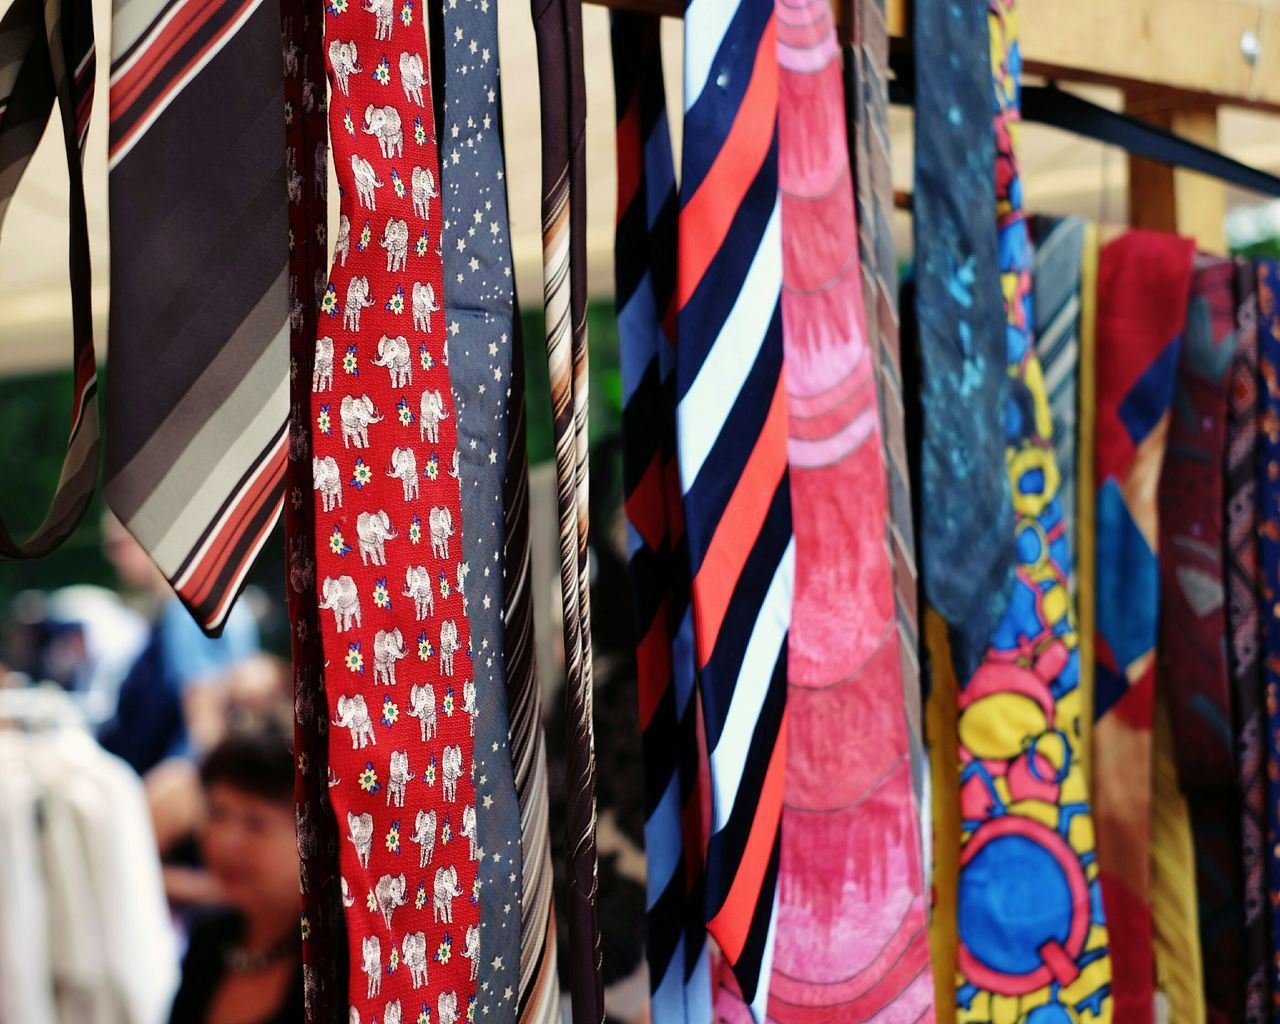 Pick your new business look. Tie Multi Colored Retail  Outdoors Choice Close-up Day Ties Fleamarket Flea Markets Fashion